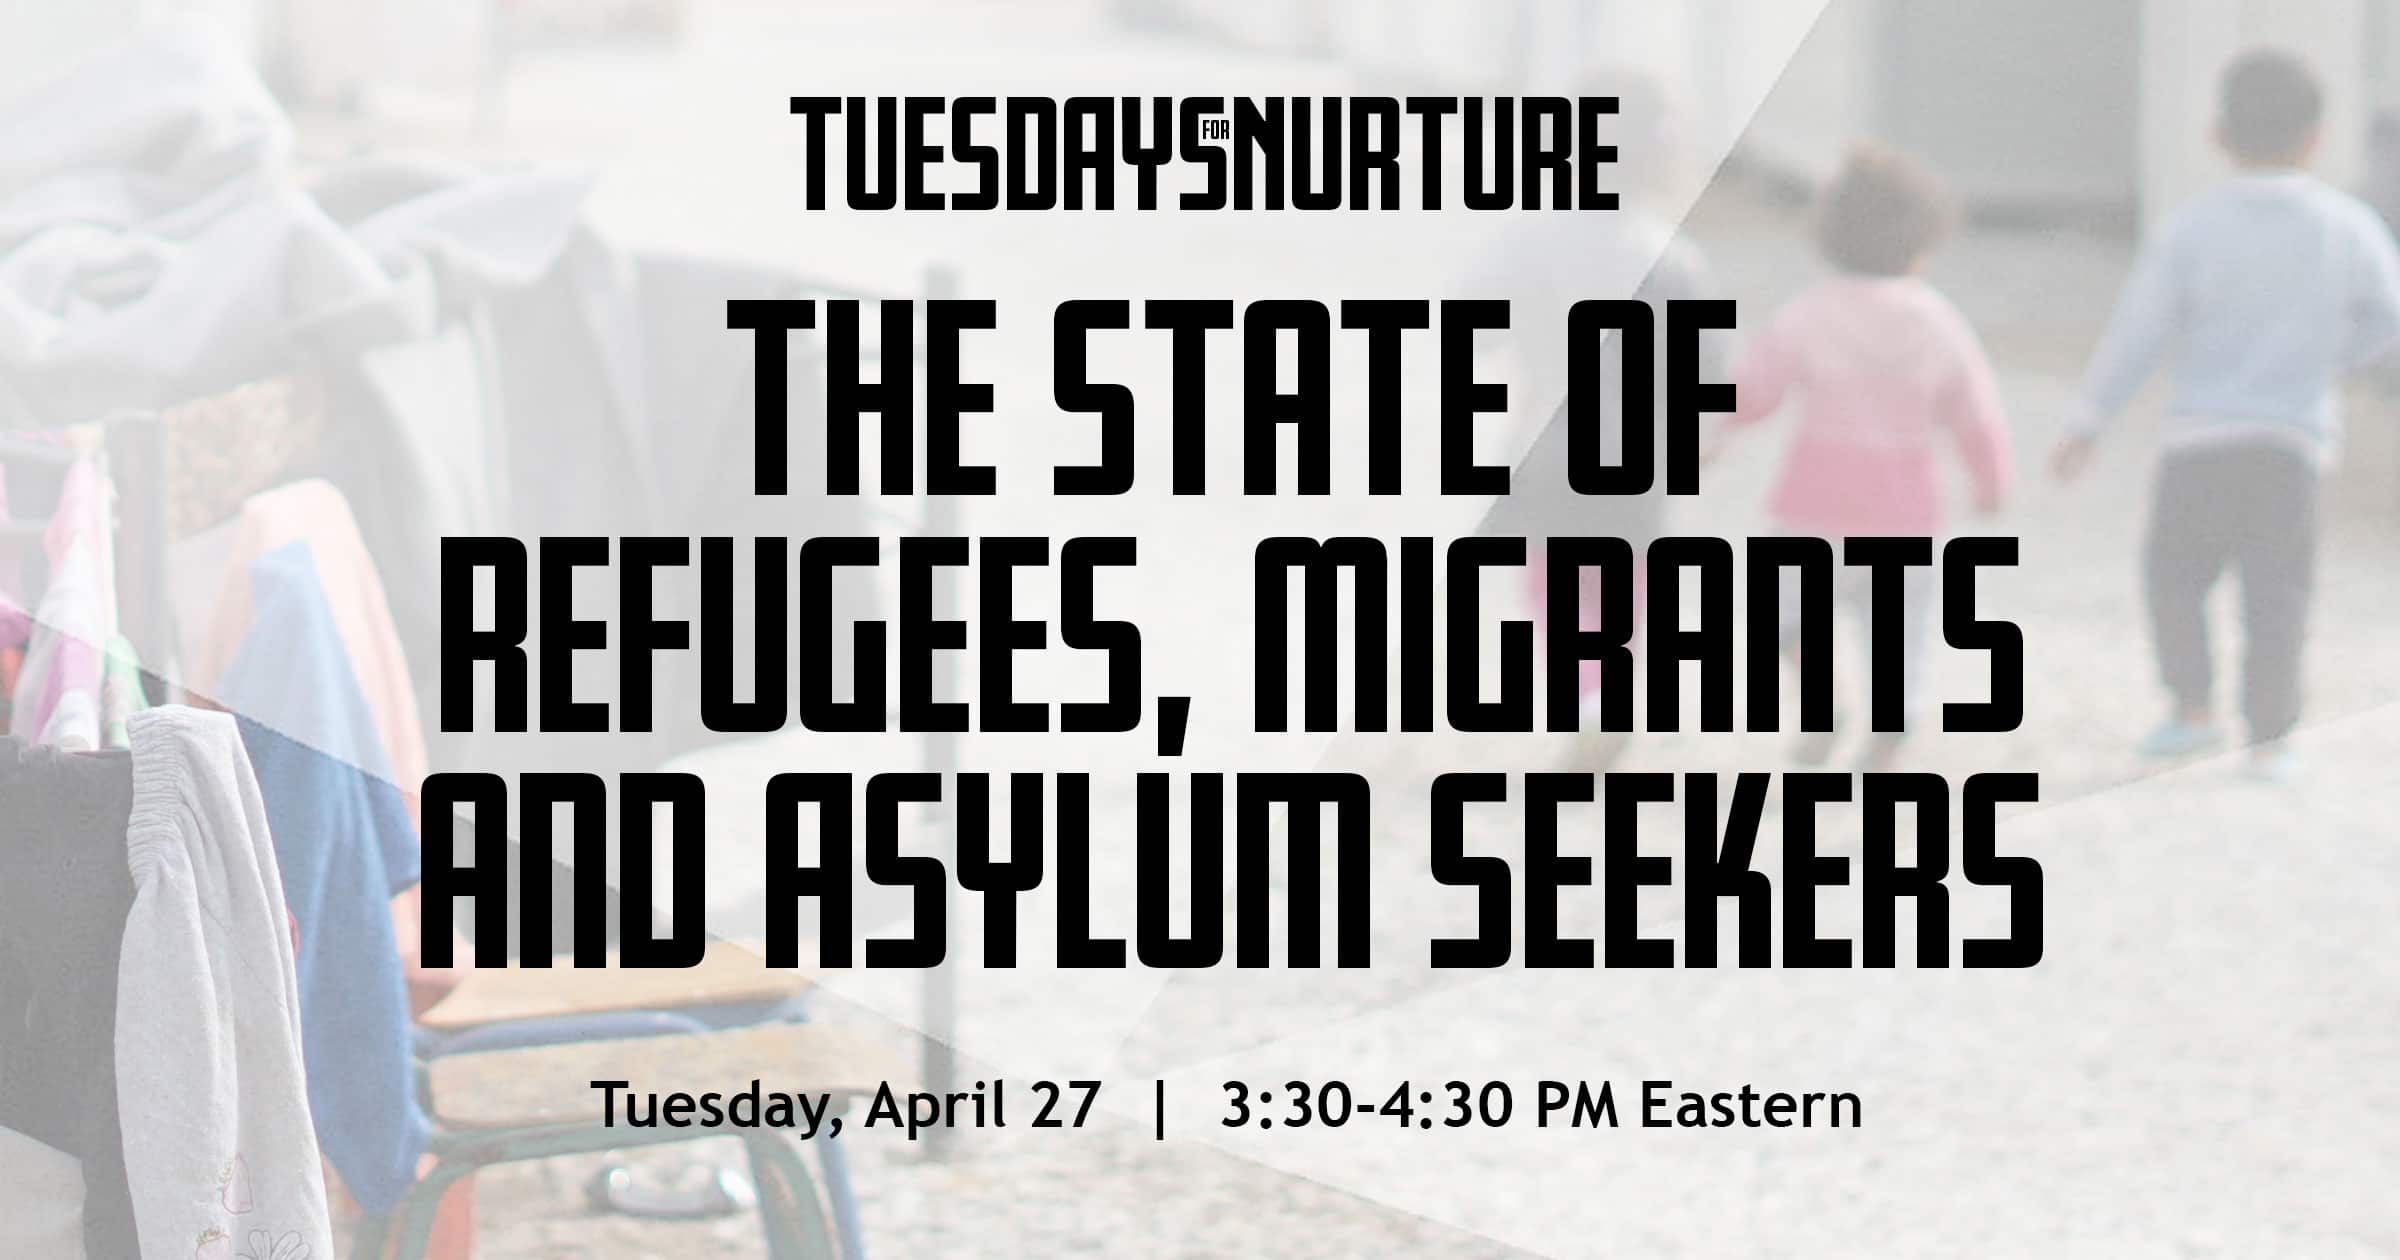 Tuesdays for nurture. The state of refugees, migrants and asylum seekers. Tuesday, April 27. 3:30 - 4:40 PM Eastern